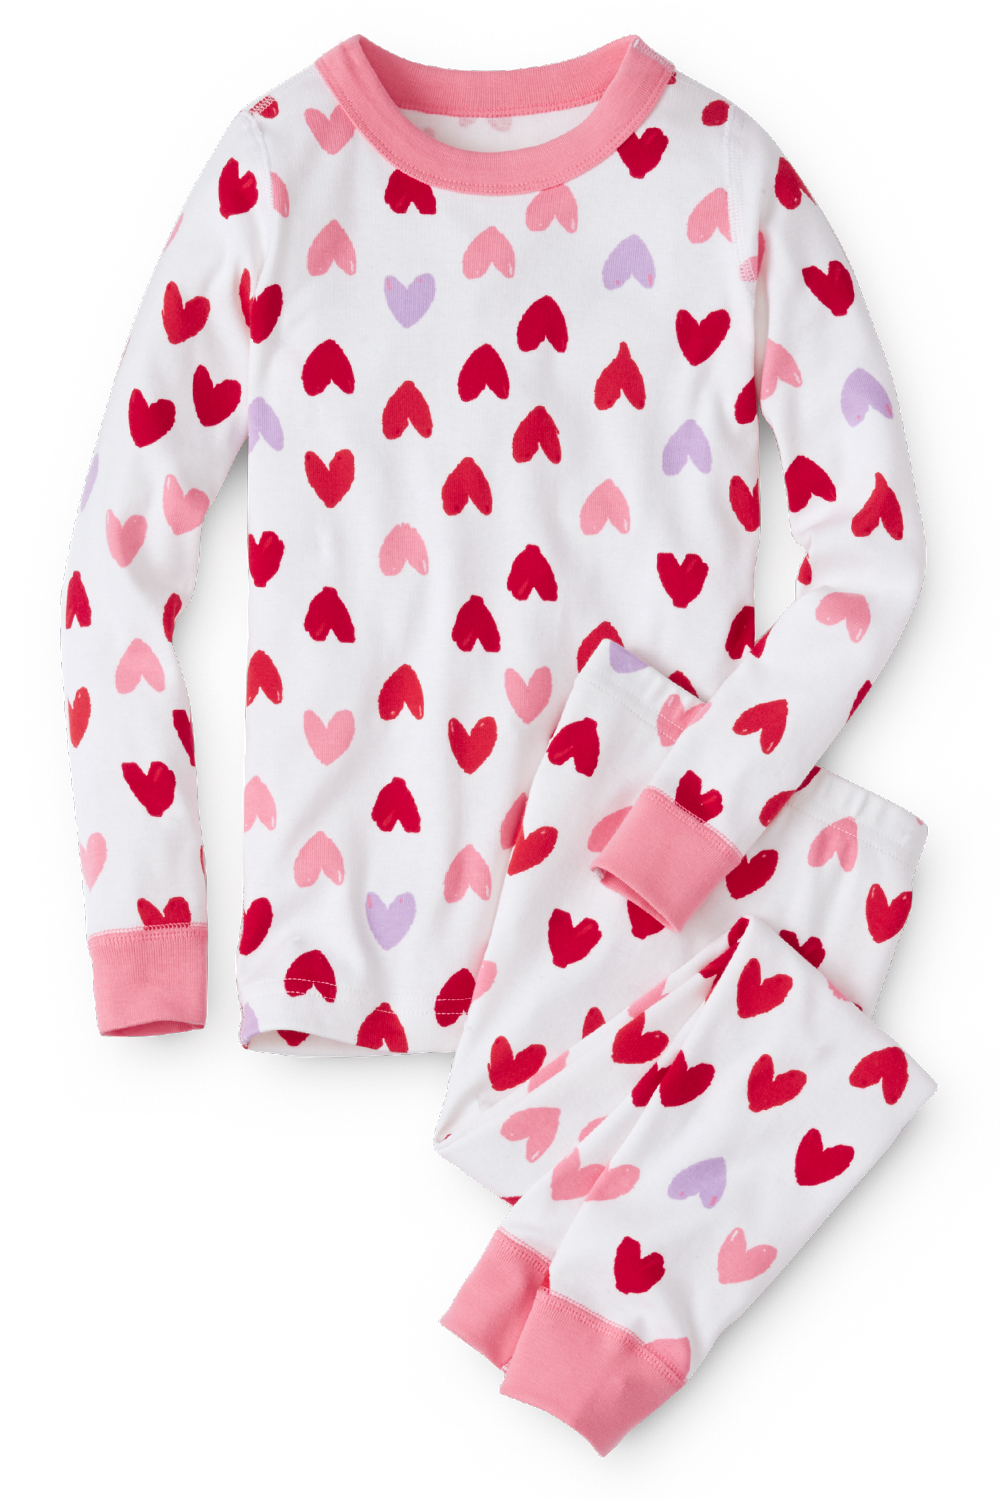 Valentine Pajamas for kids in Organic Cotton